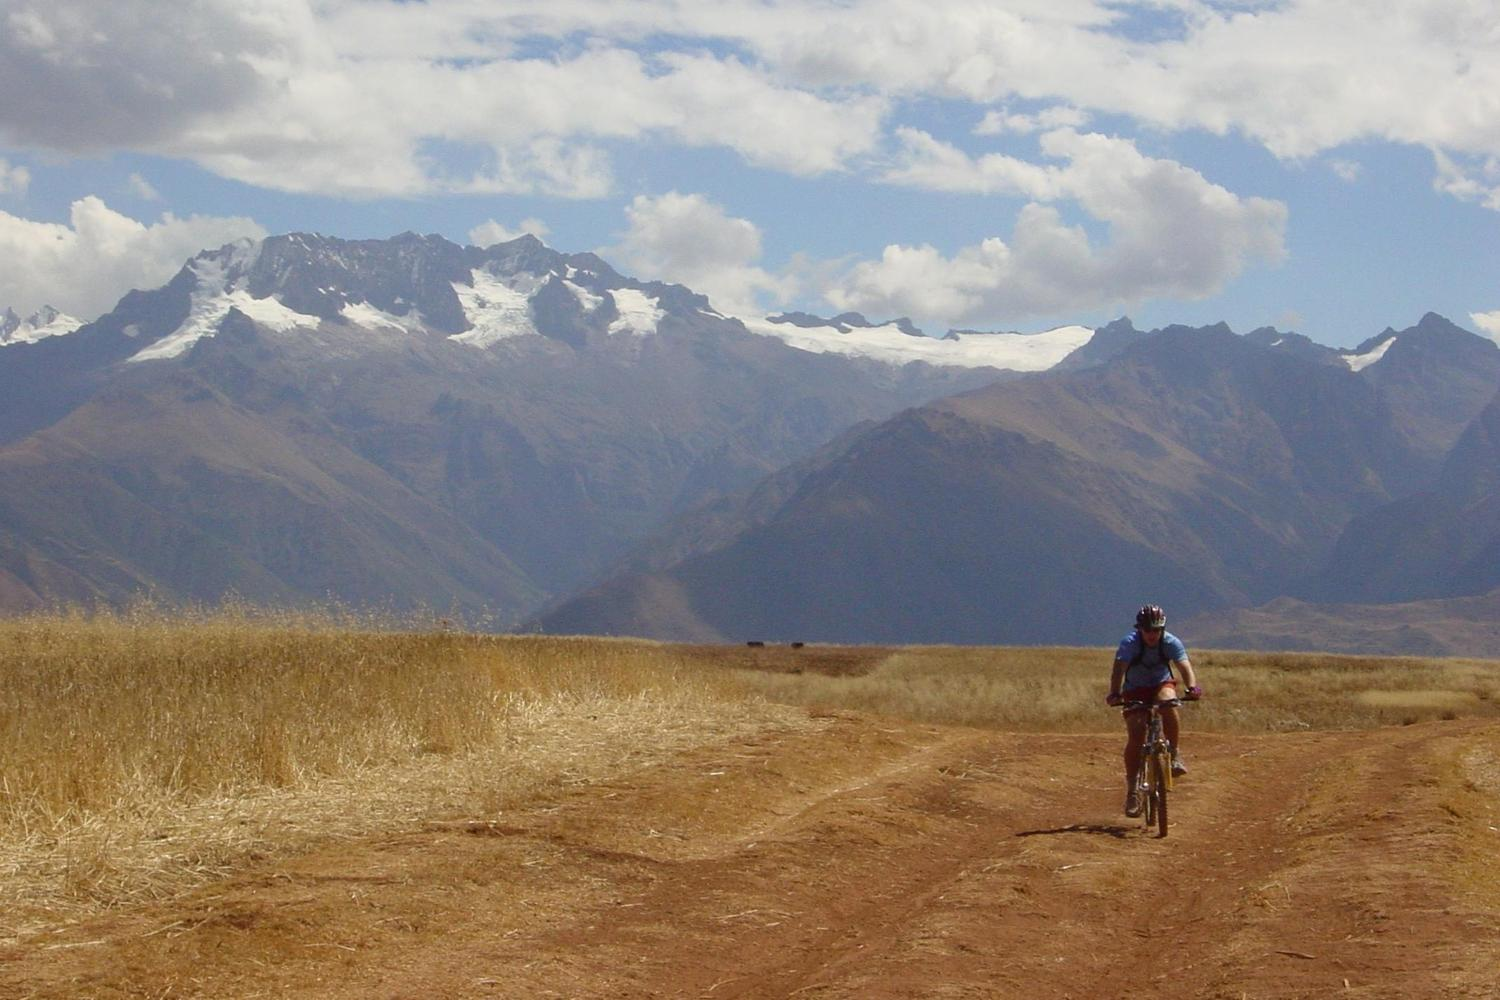 Downhill mountain biking in the Sacred Valley, Peru